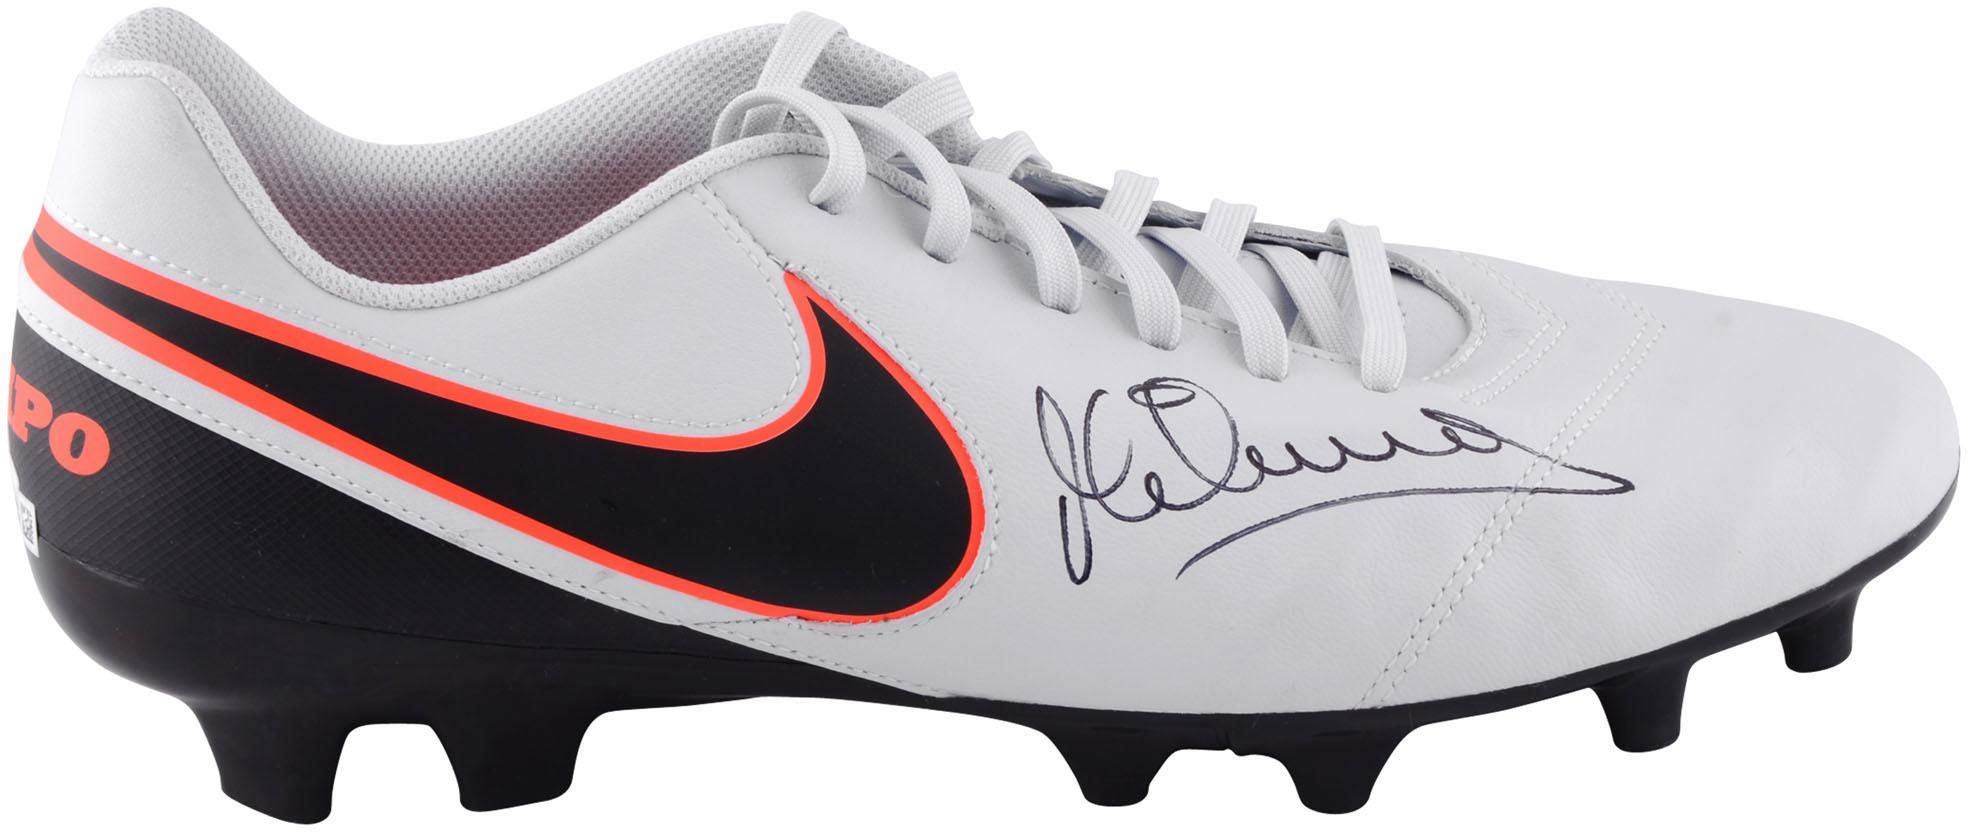 Michael Owen Liverpool Autographed Grey Nike Tiempo Soccer Cleat ICONS Fanatics Authentic Certified